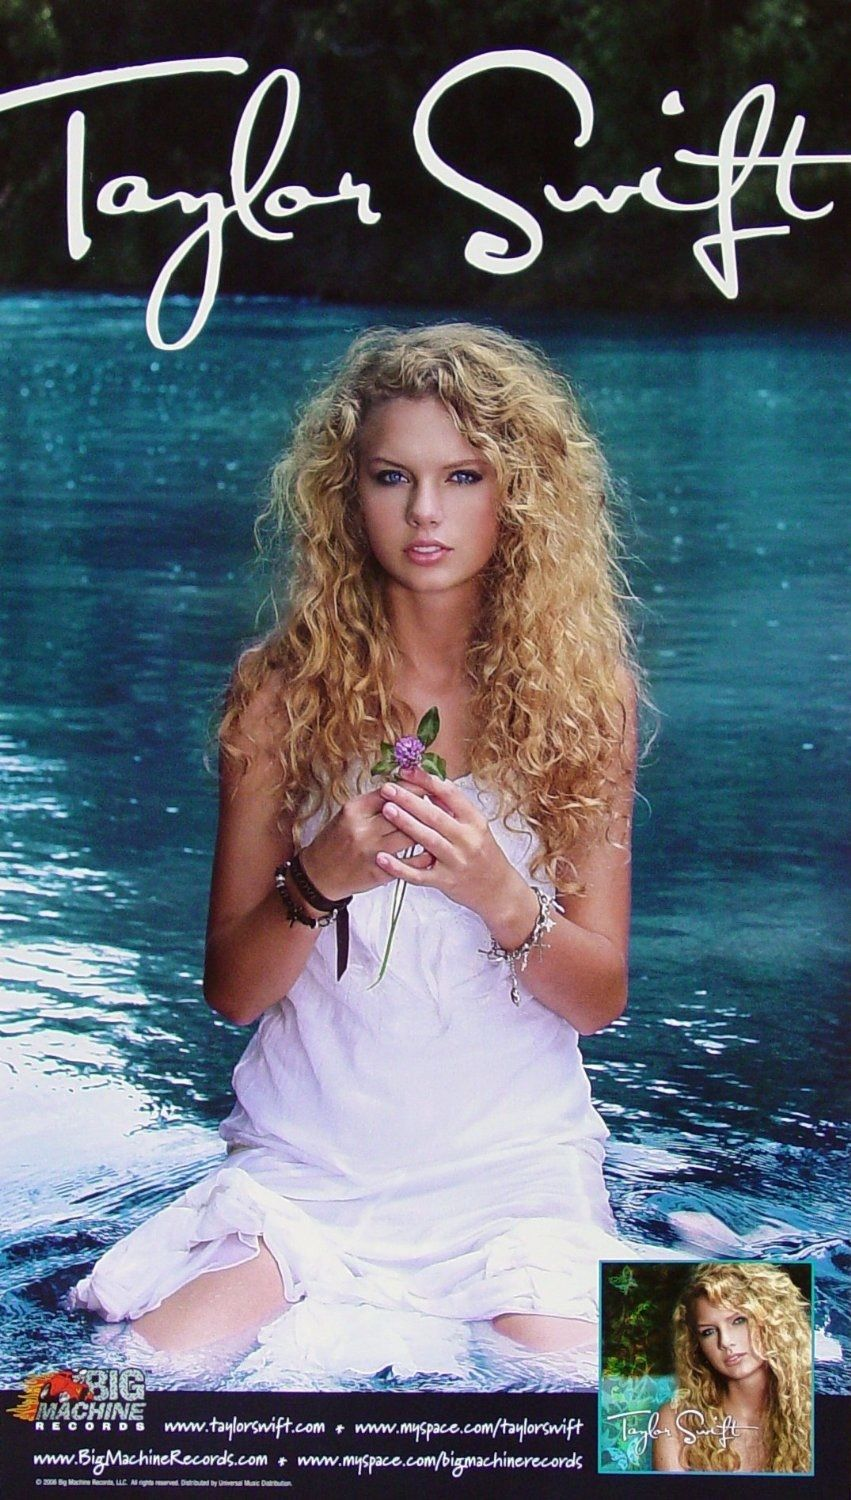 Heres The Full 85 X 15 Promotional Poster For Taylors First Album